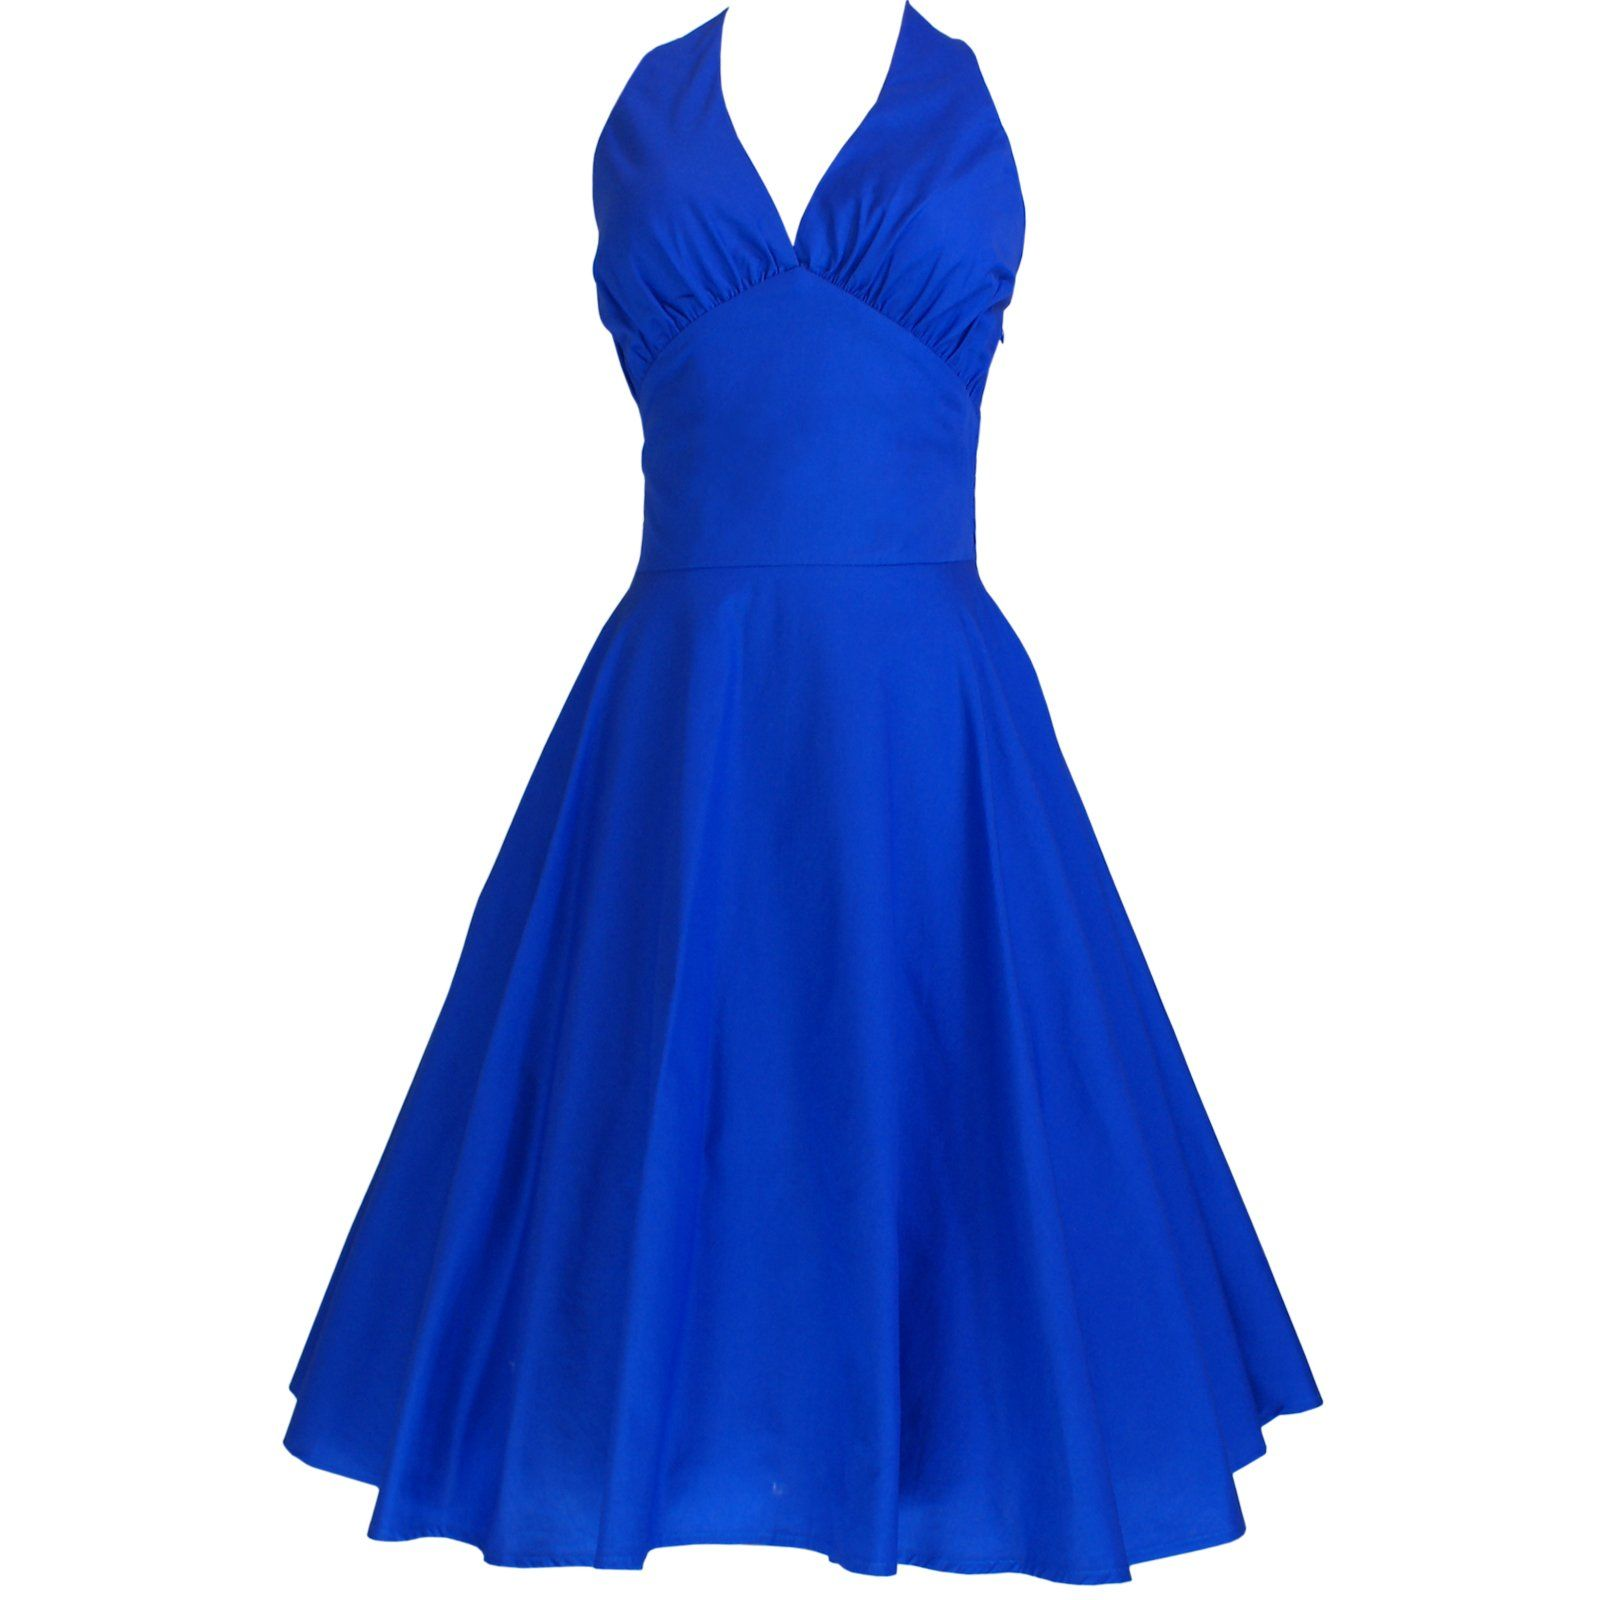 Lapis color dress for girl